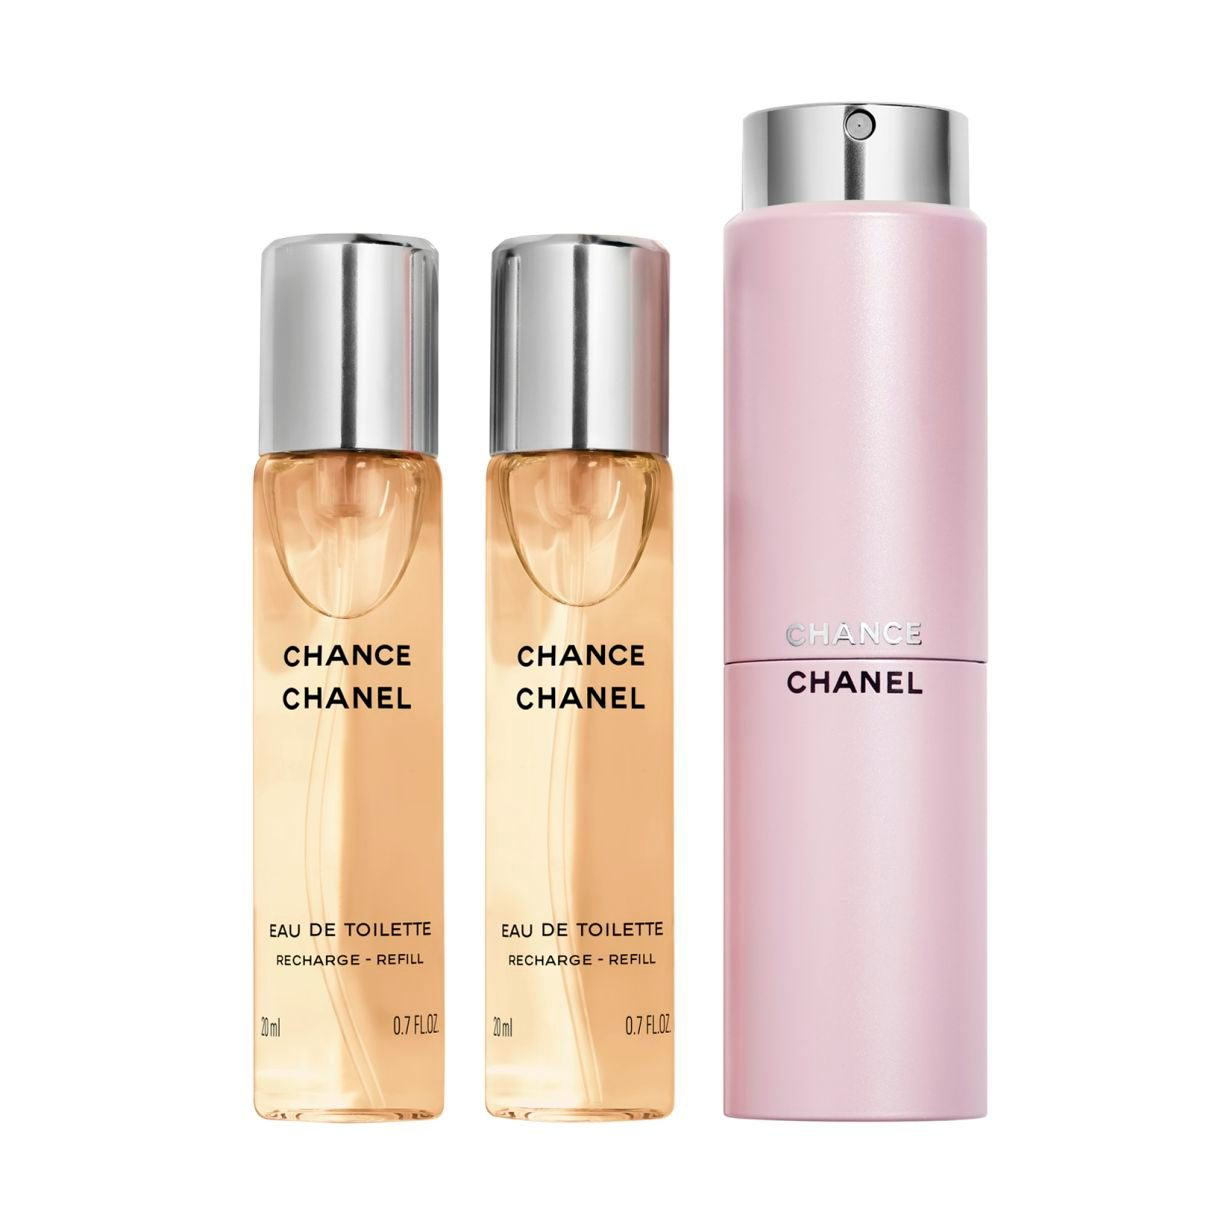 CHANCE EAU DE TOILETTE TWIST AND SPRAY 3x20ml